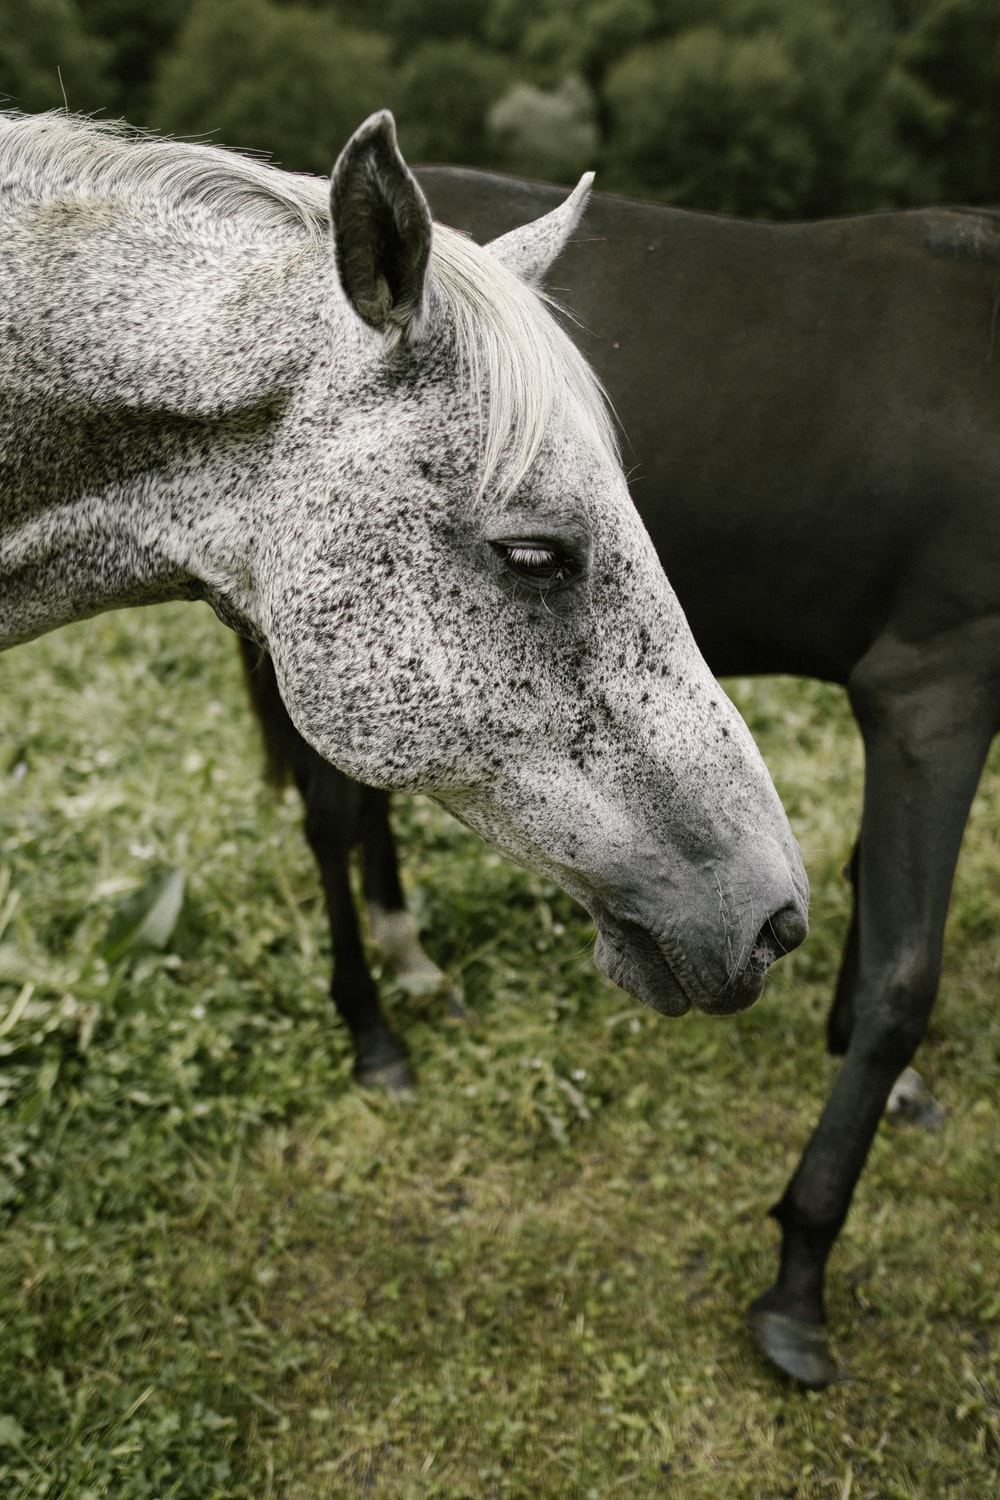 close up photography of horse's head